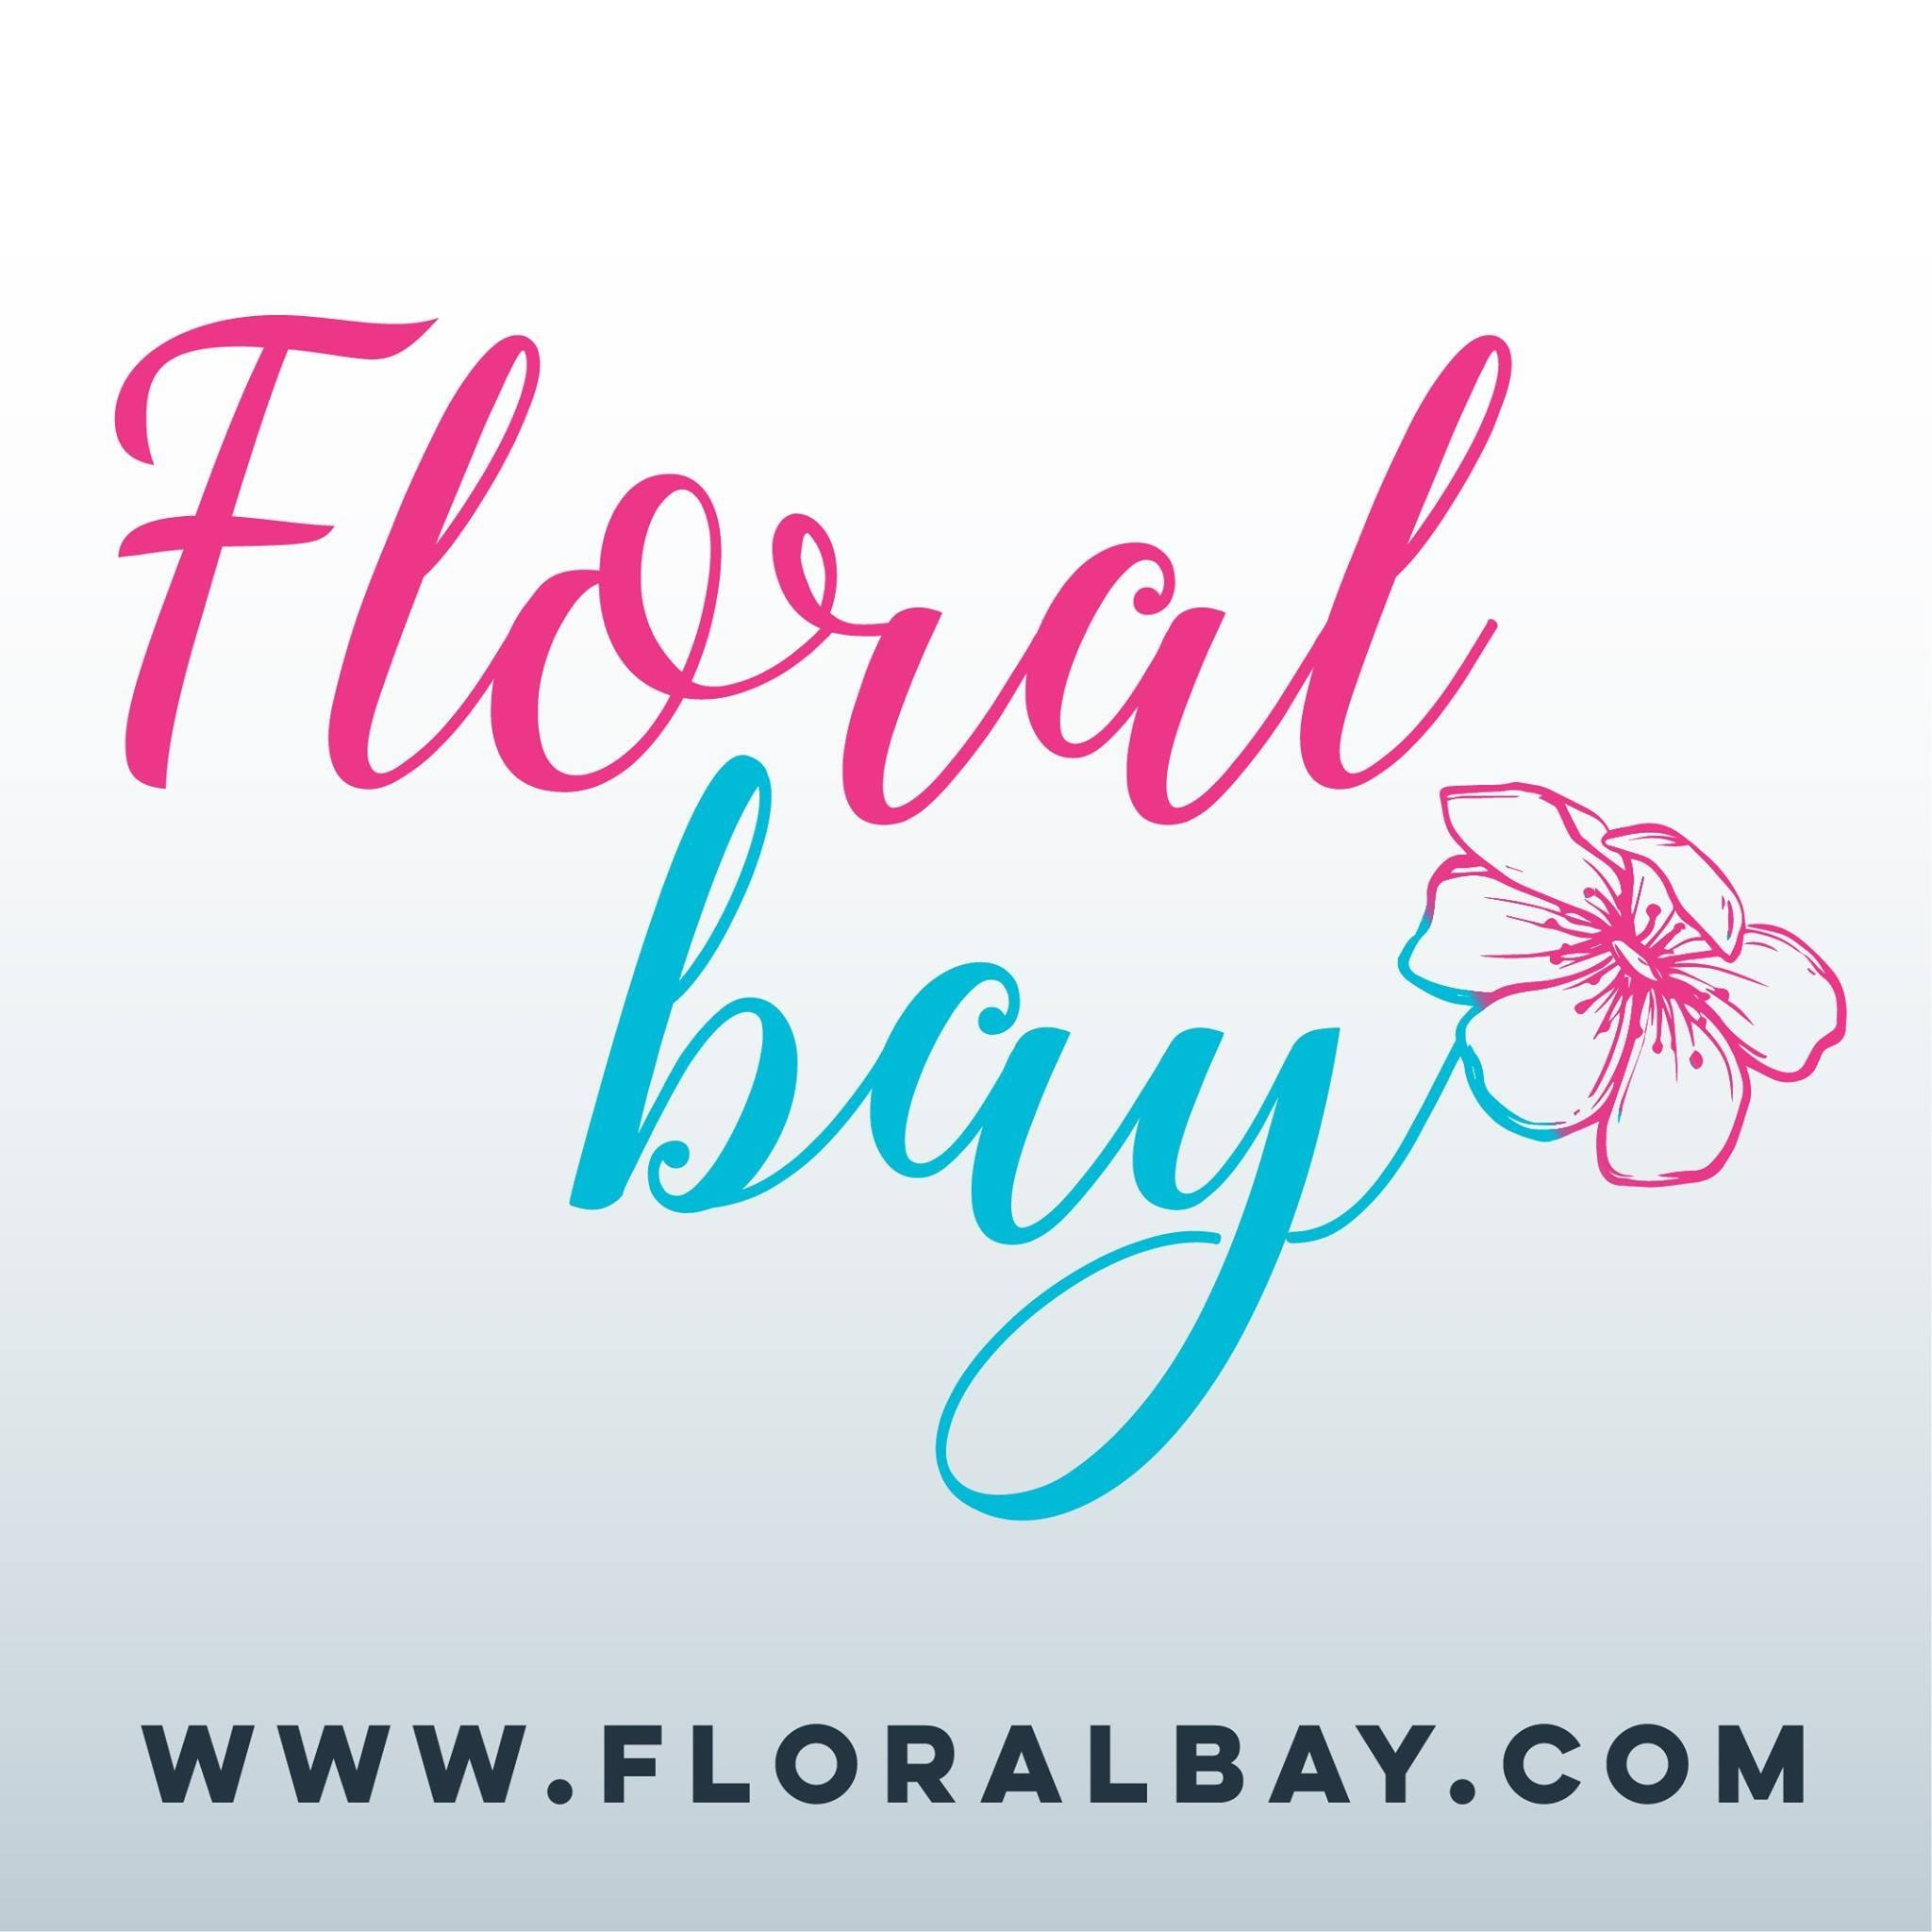 Avatar of user Floral bay